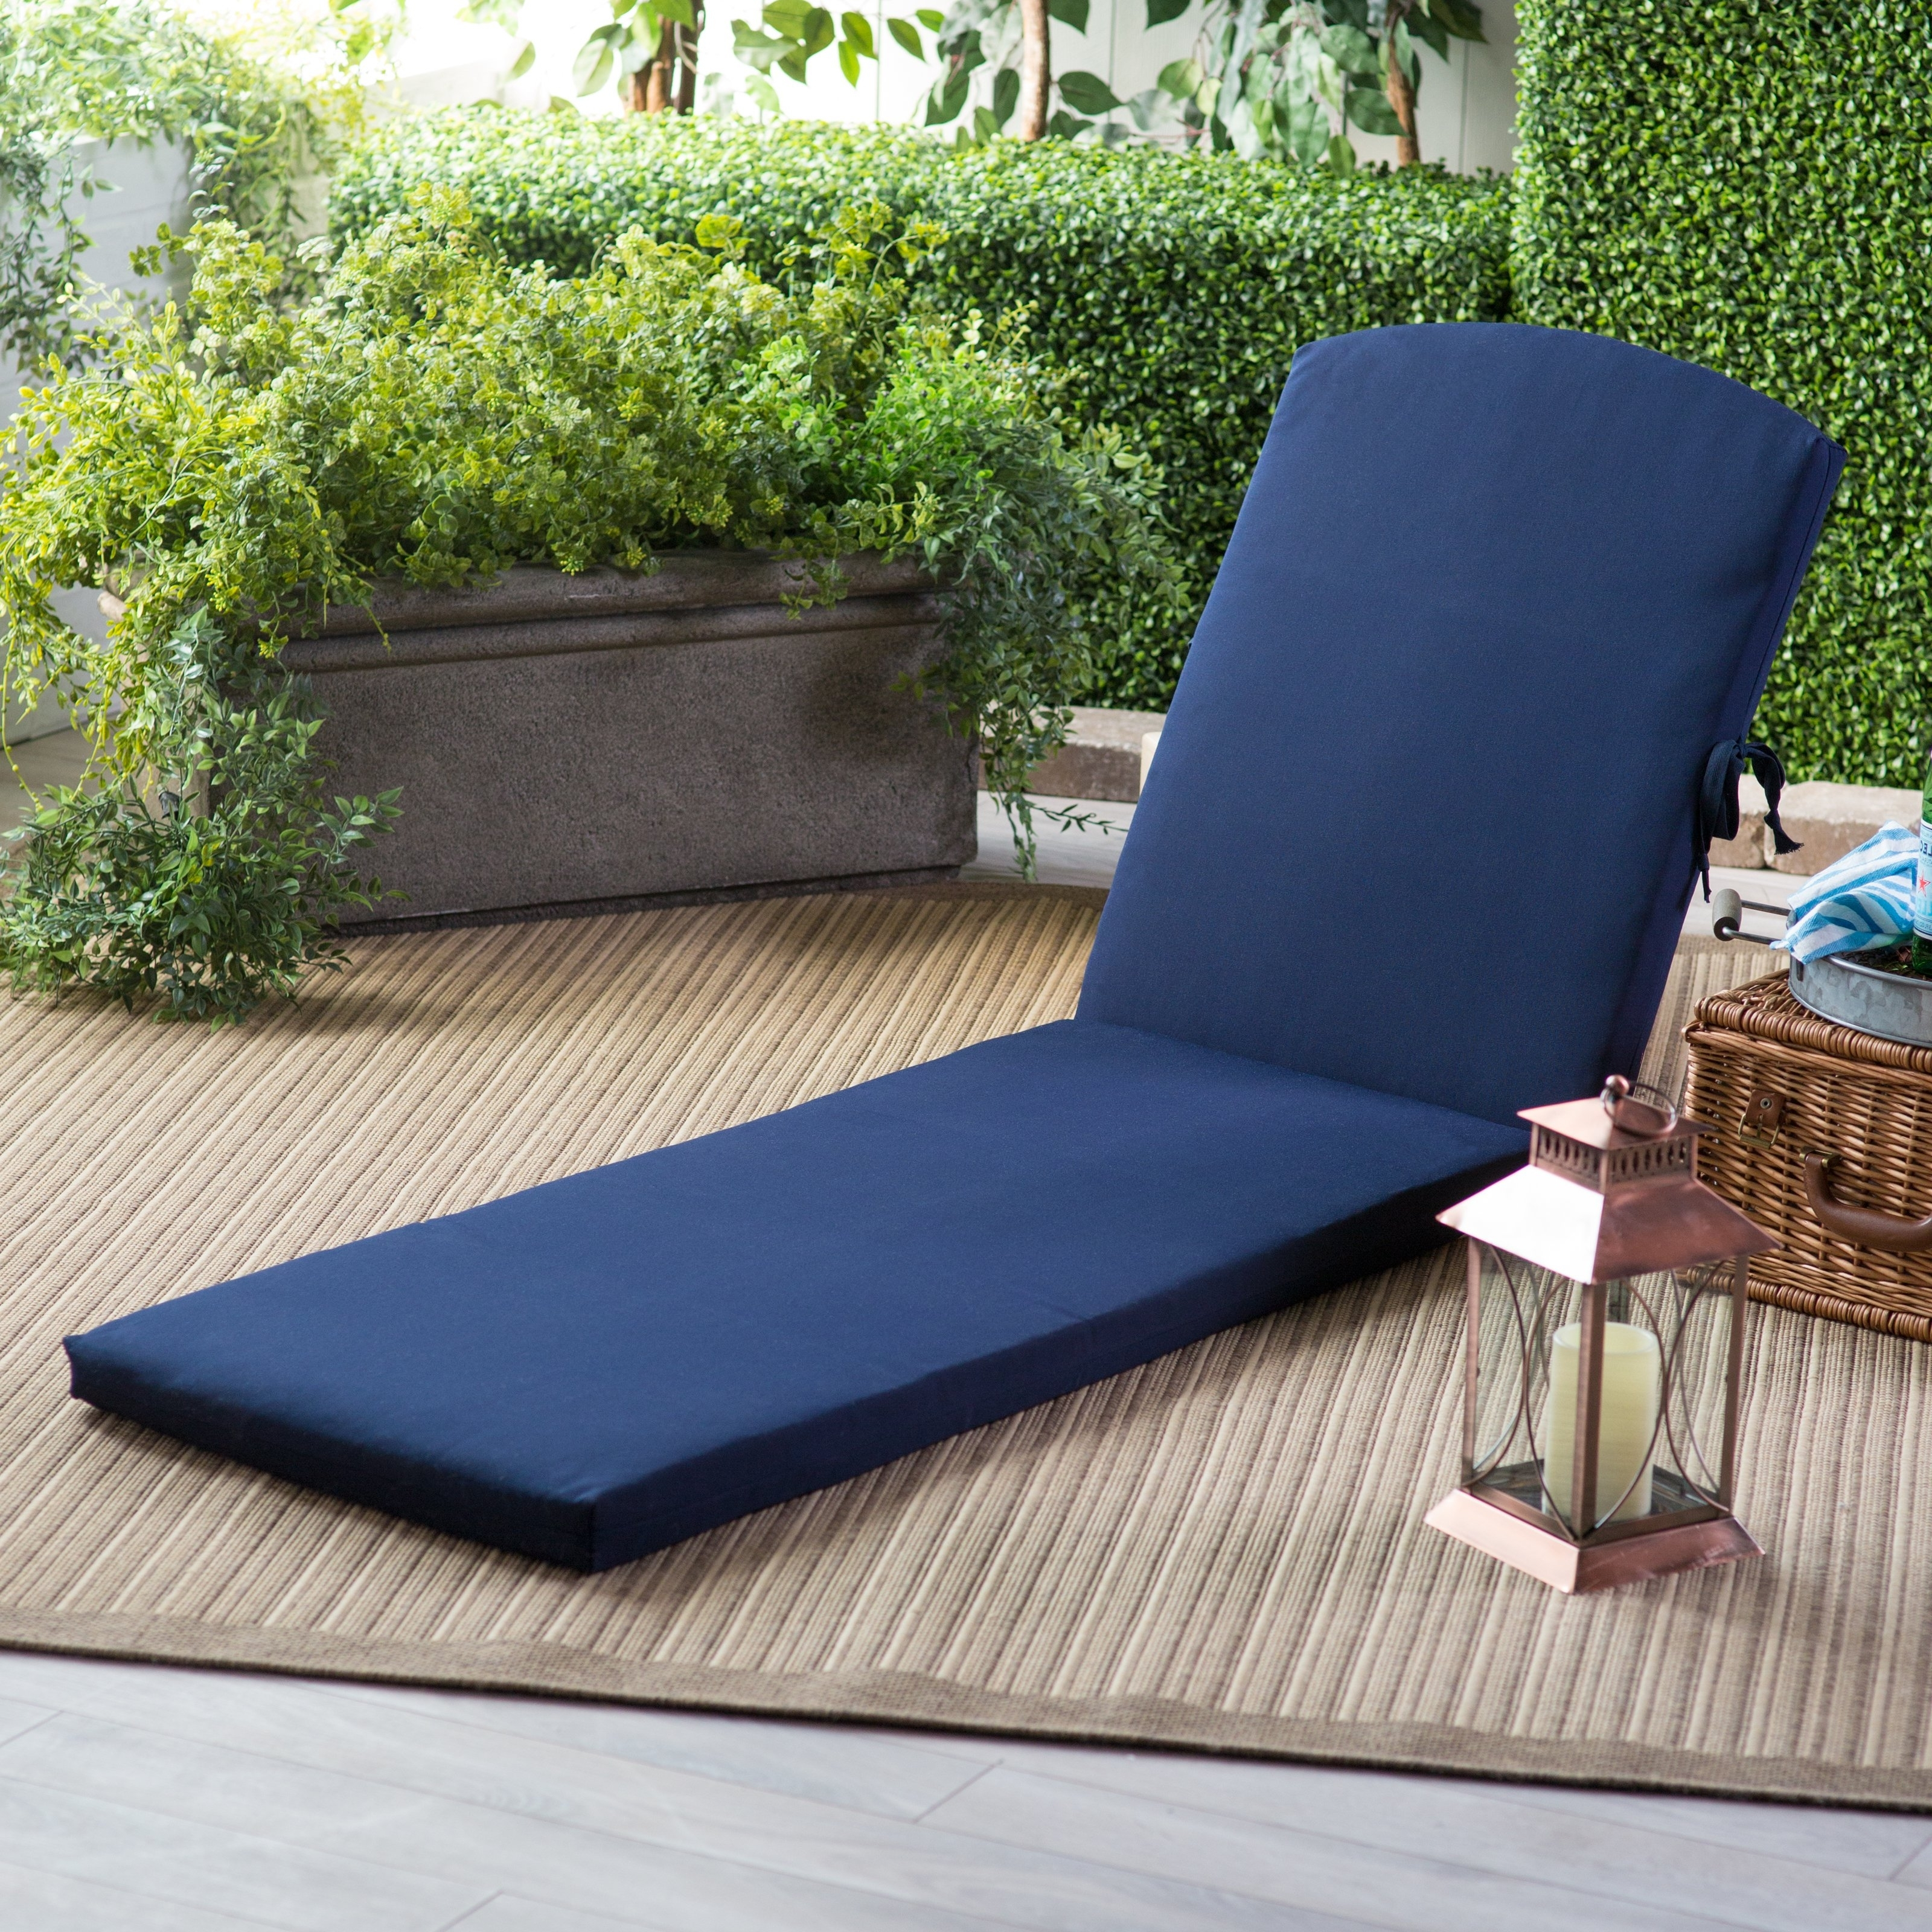 Outdoor : Tufted Chaise Bench Patio Furniture Chaise Lounge With 2017 Blue Outdoor Chaise Lounge Chairs (View 9 of 15)